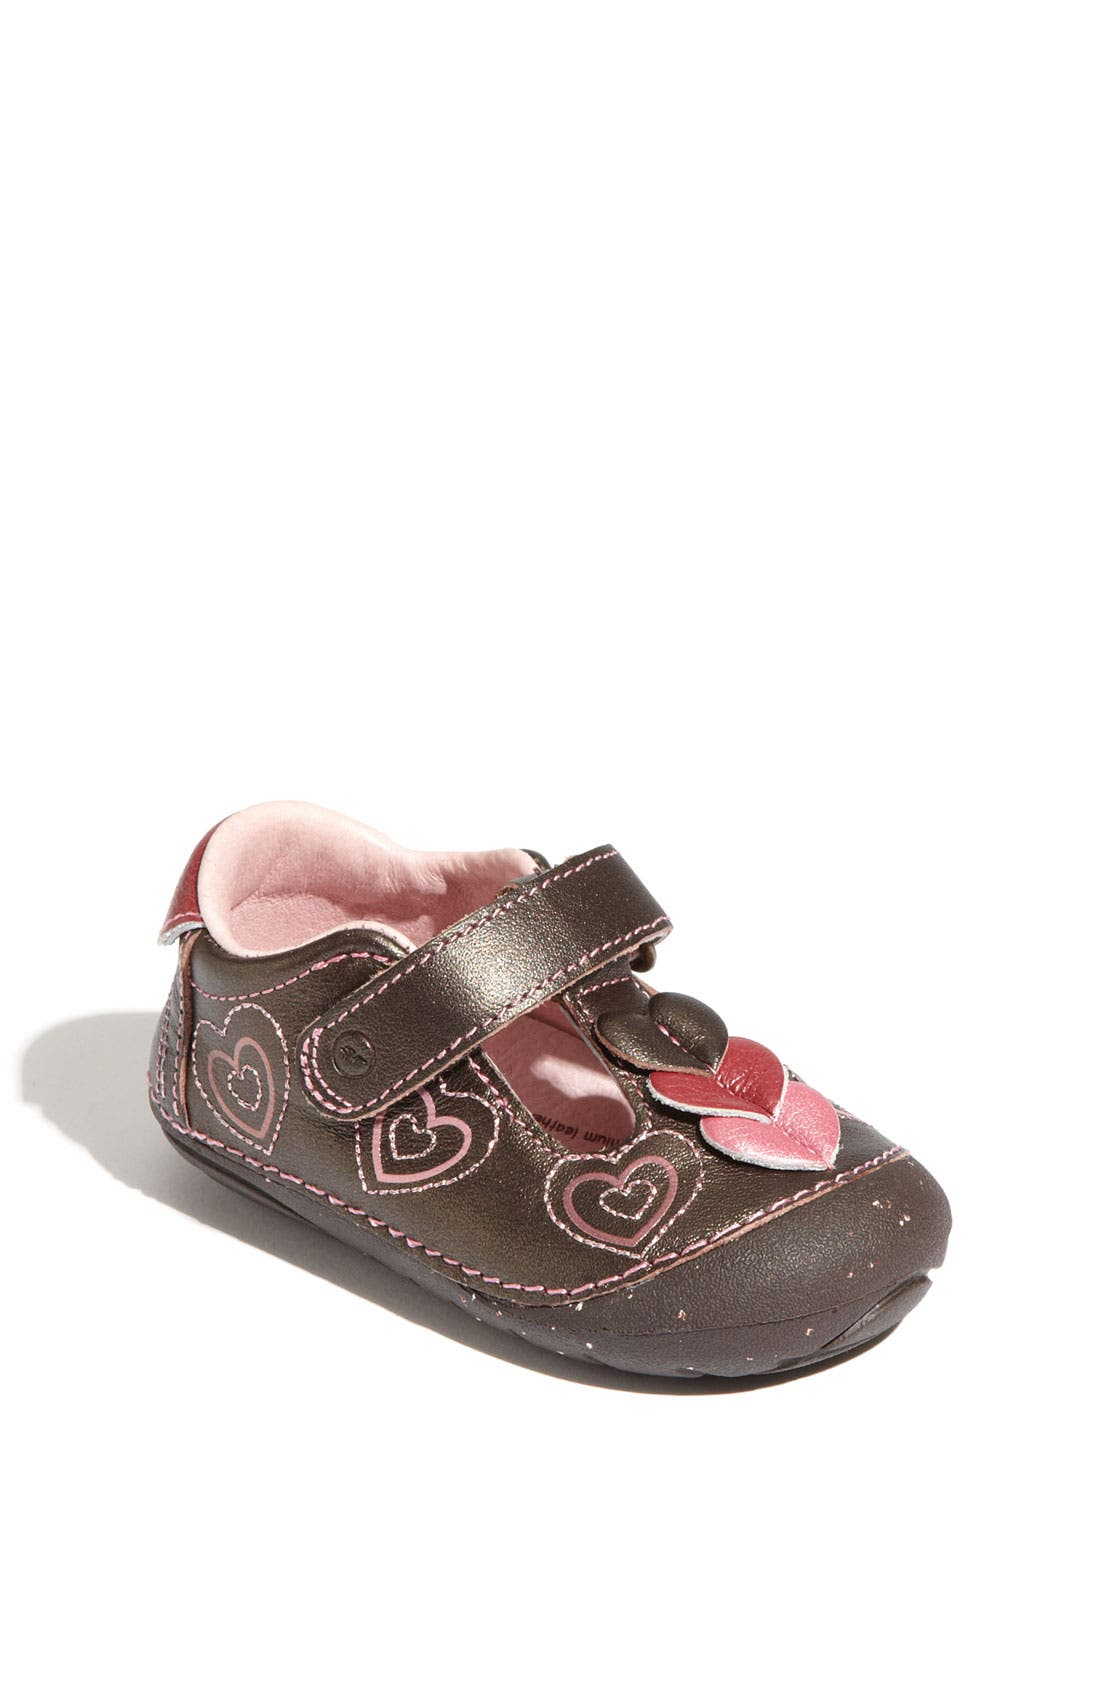 Main Image - Stride Rite 'Ava' T-Strap Mary Jane (Baby & Walker)